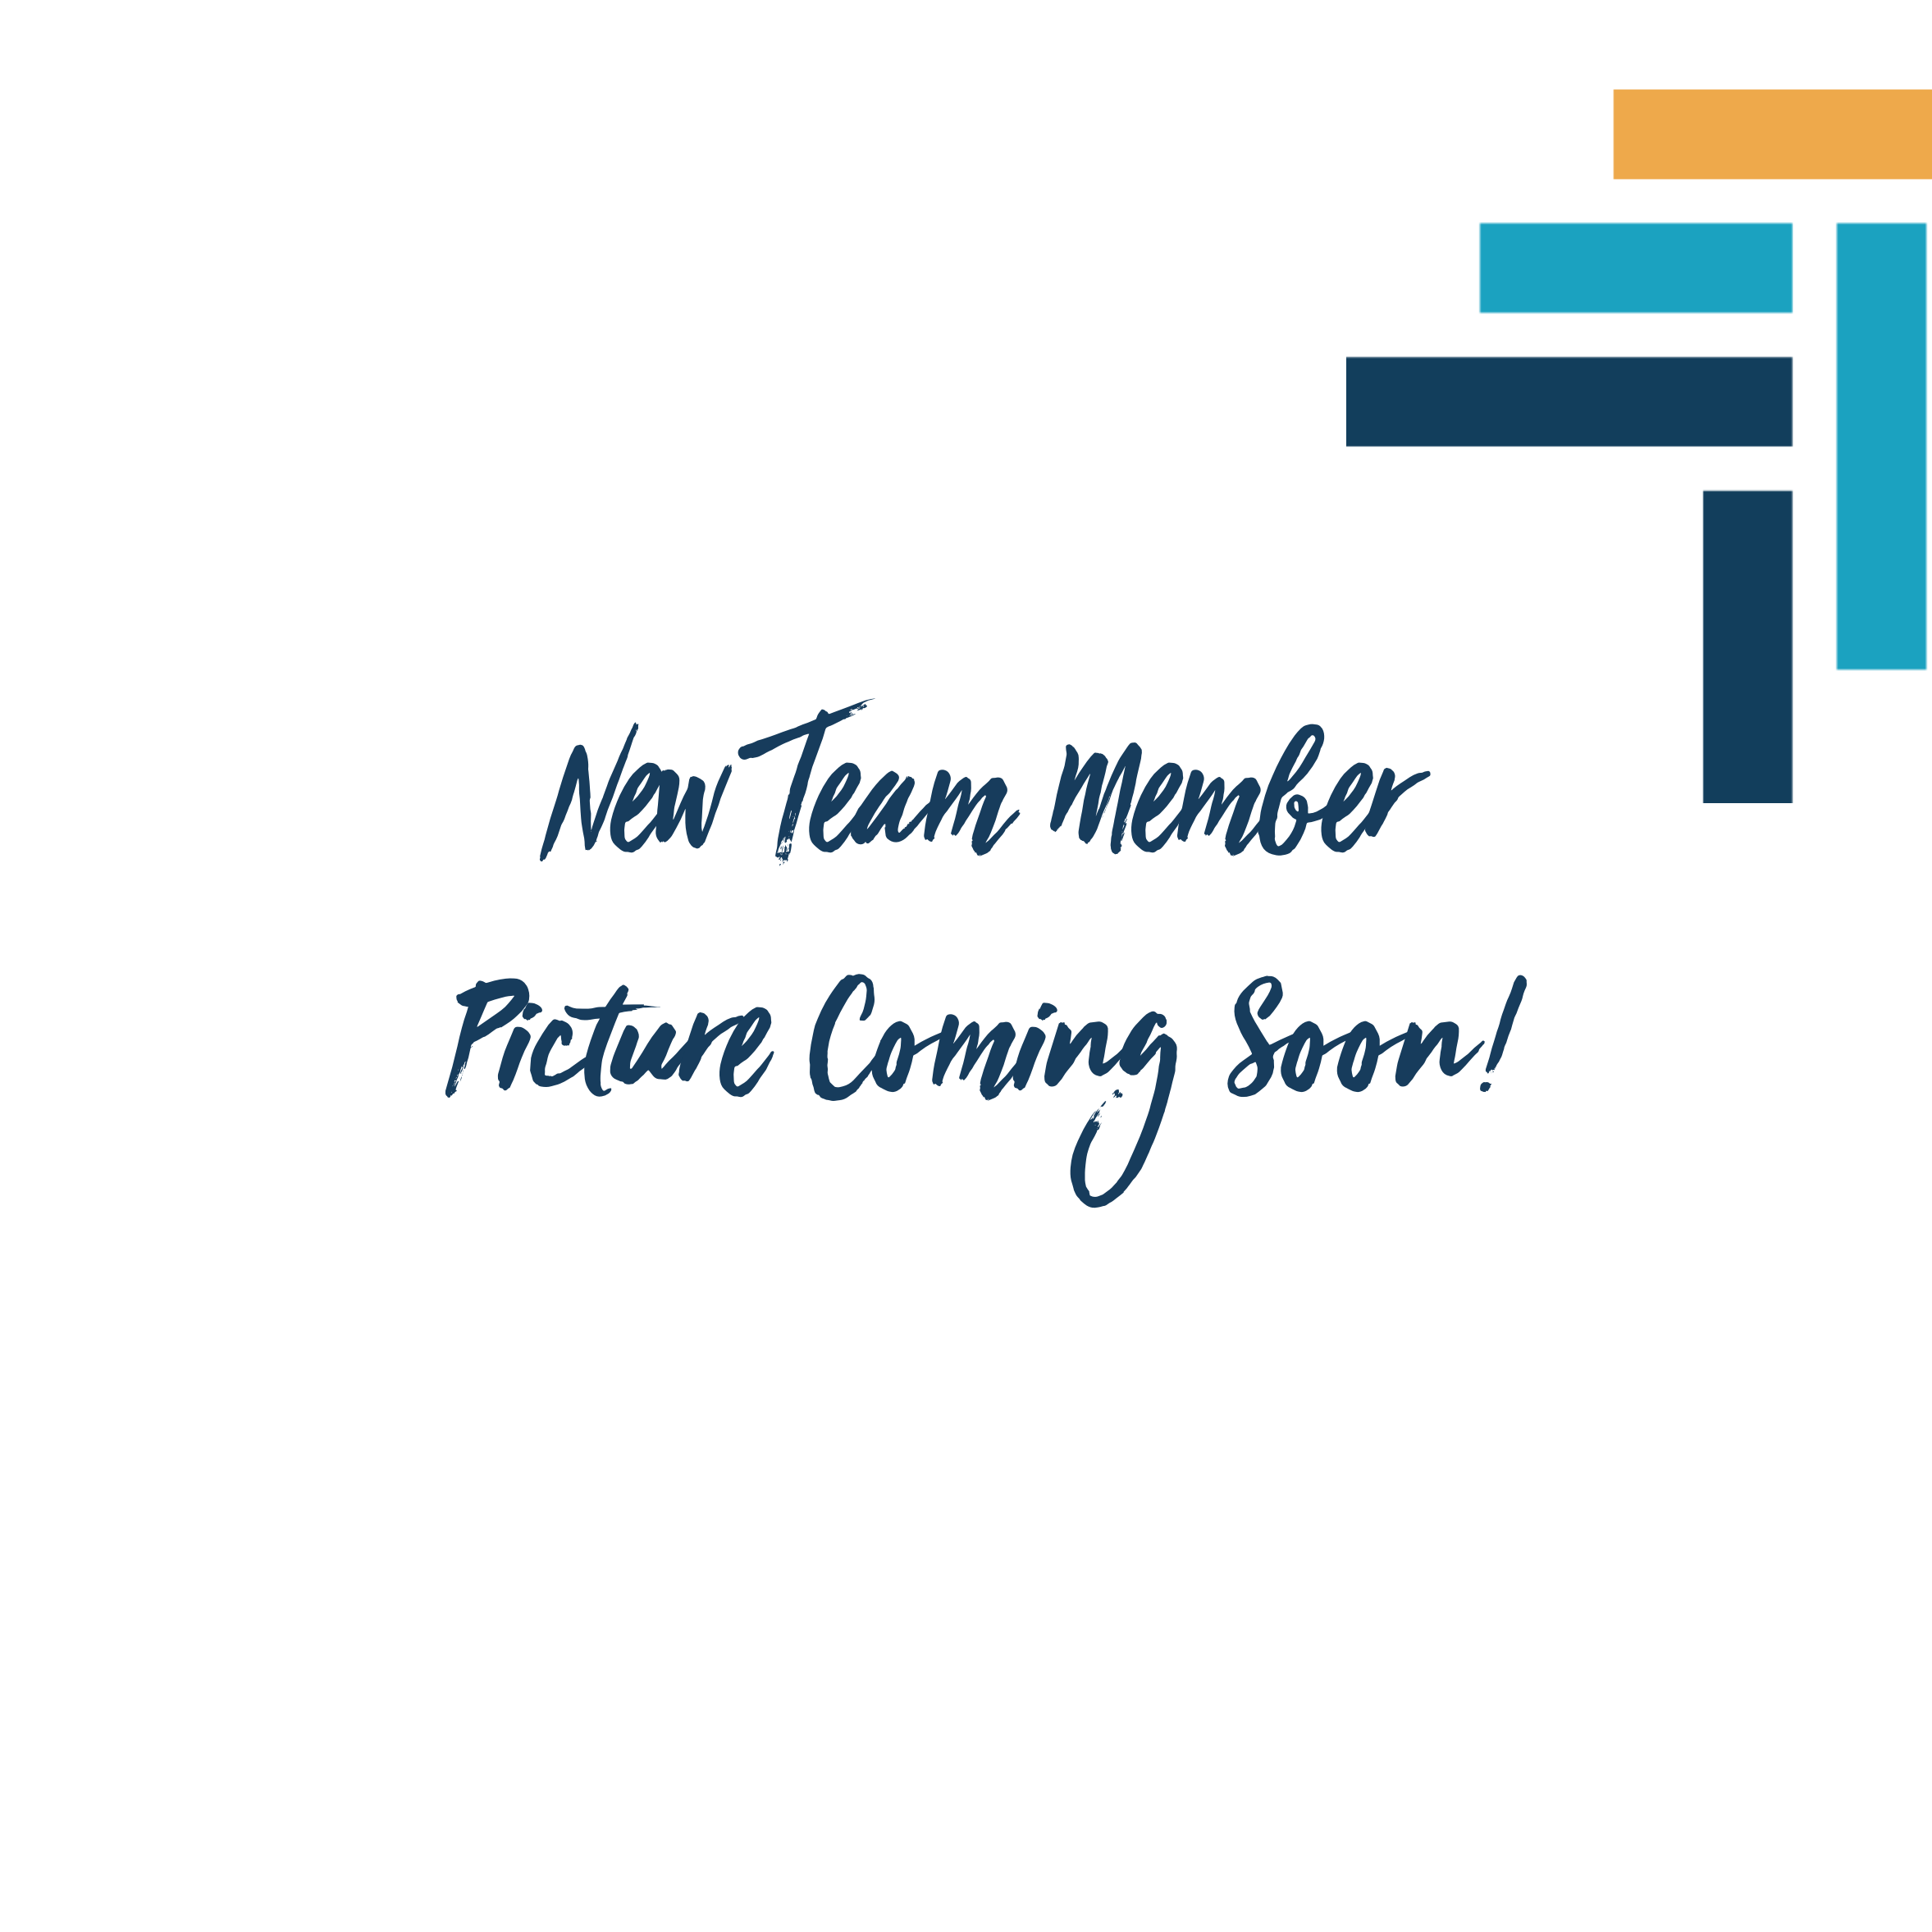 New Team Member Picture Coming Soon!